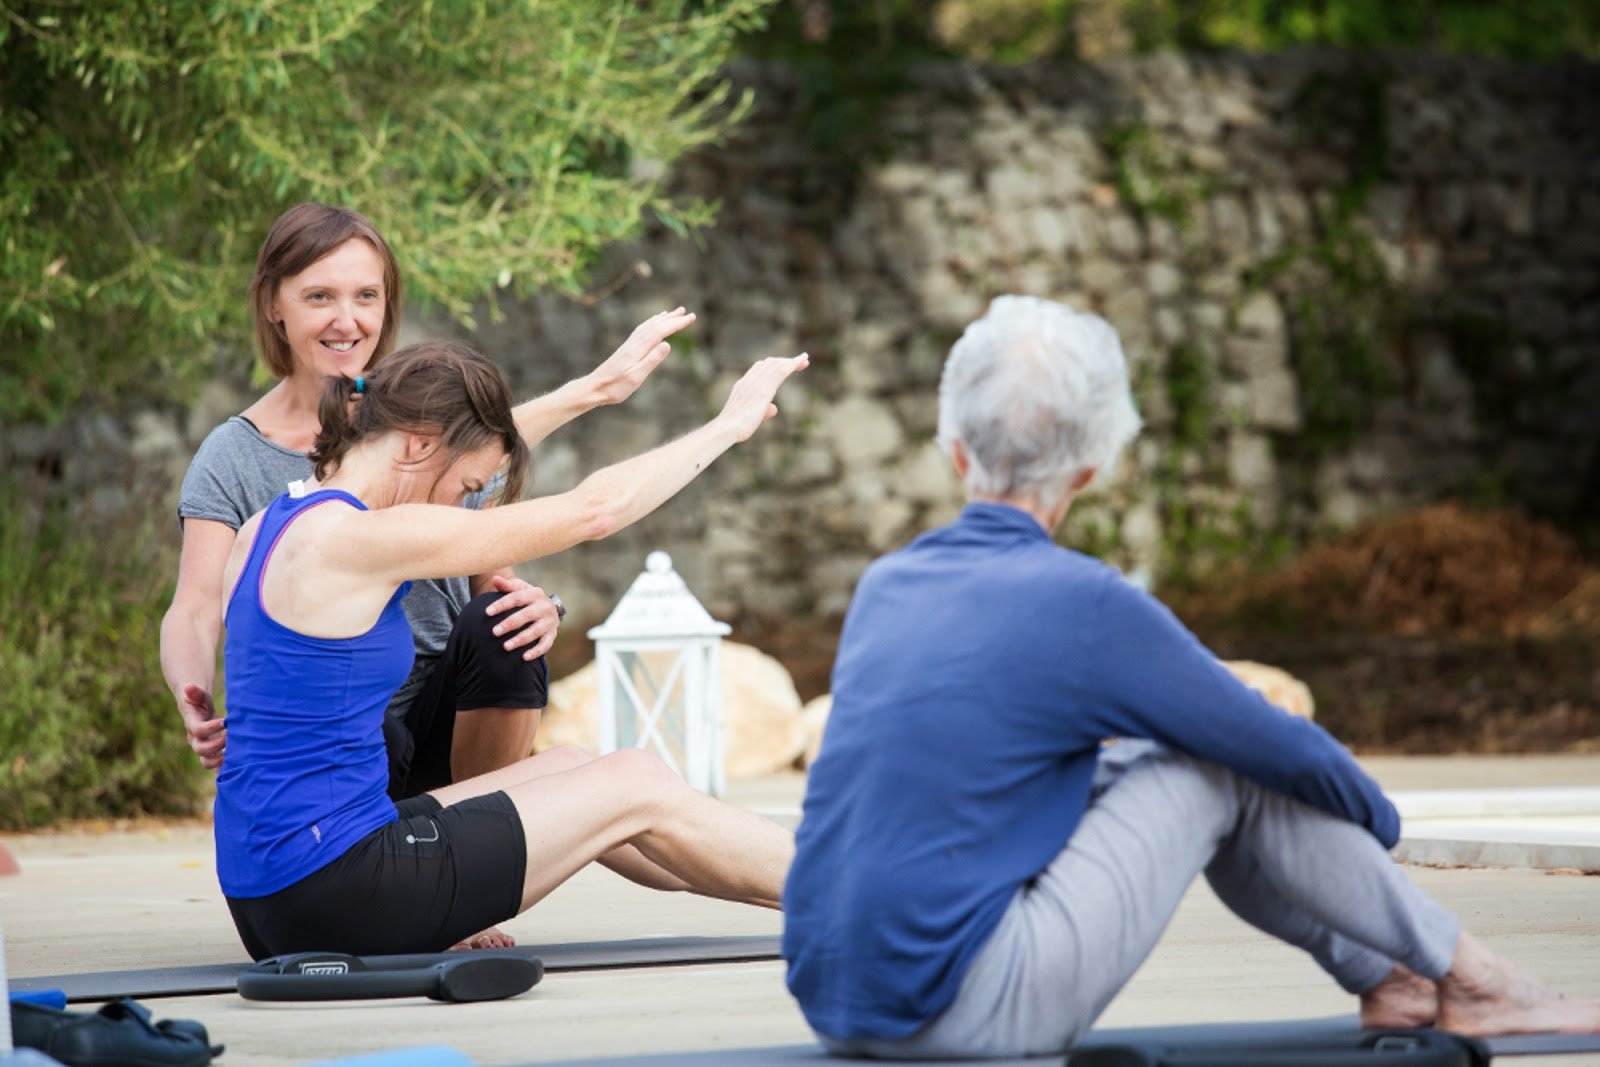 Pilates instructor helping students at the pool